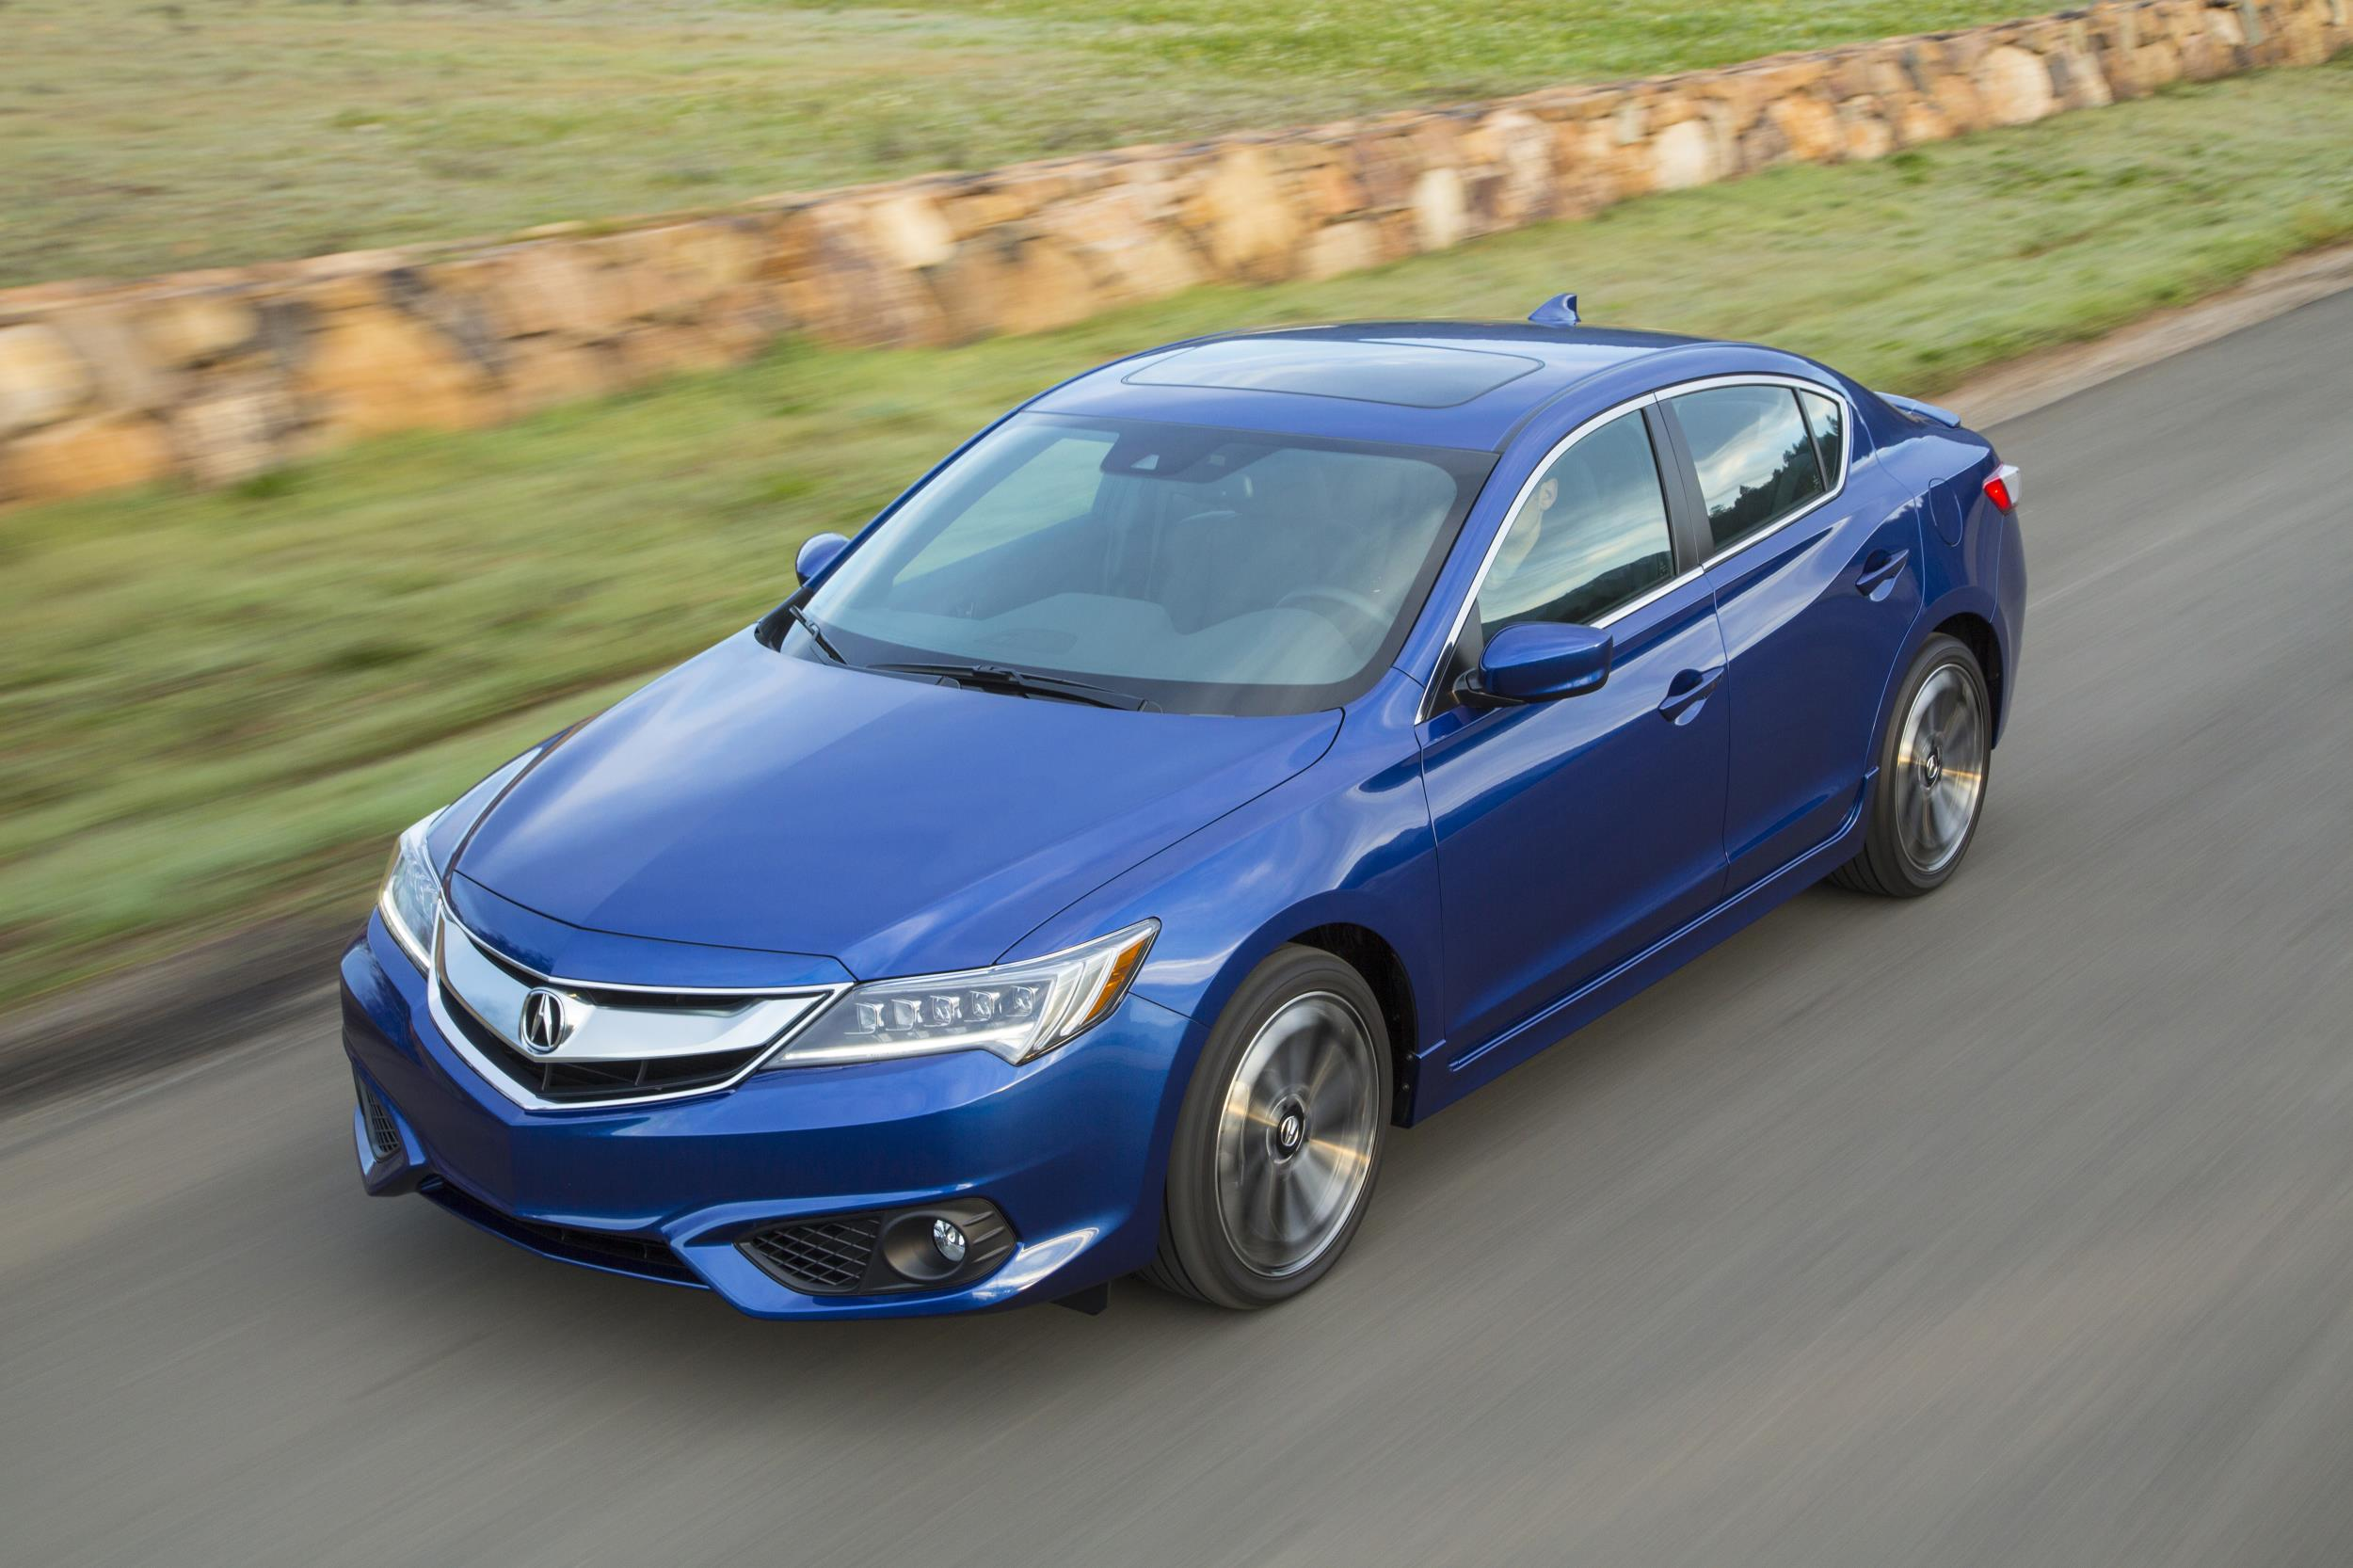 2017 Acura ILX Introduced, Costs $90 More than 2016 Model ...